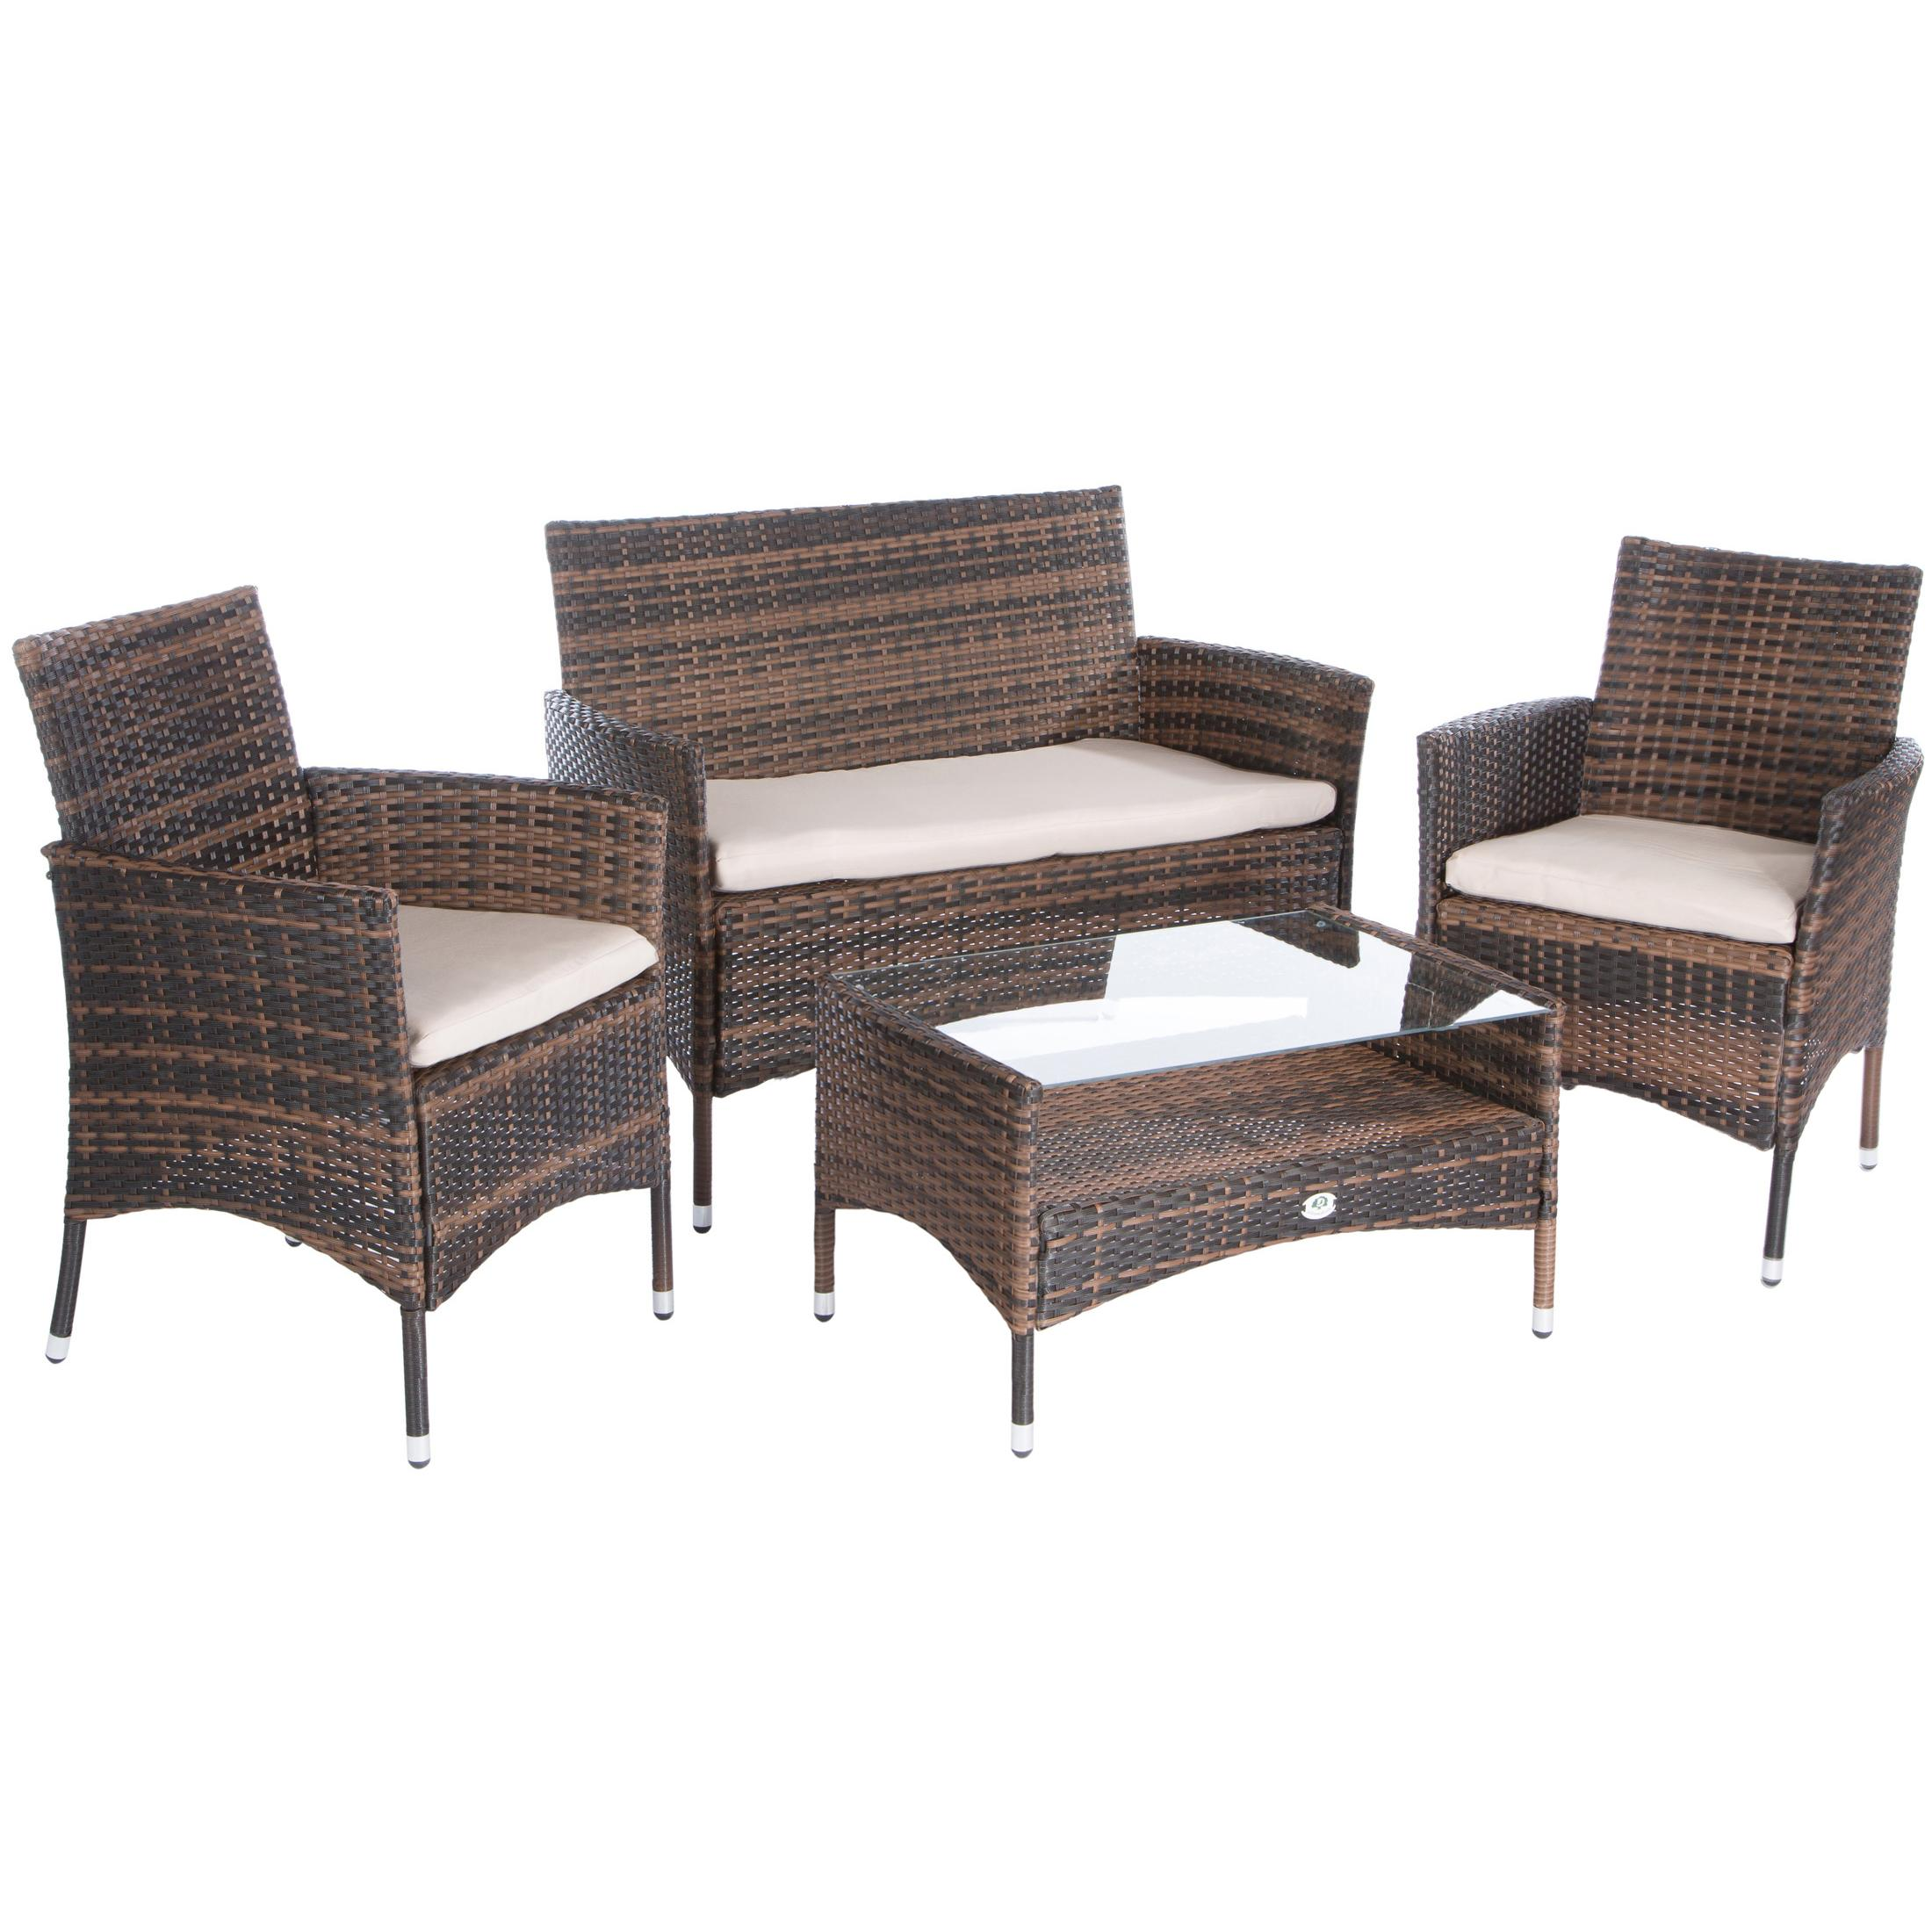 polyrattan essgruppe sitzgruppe terassenm bel outdoor m bel rattan lounge set ebay. Black Bedroom Furniture Sets. Home Design Ideas